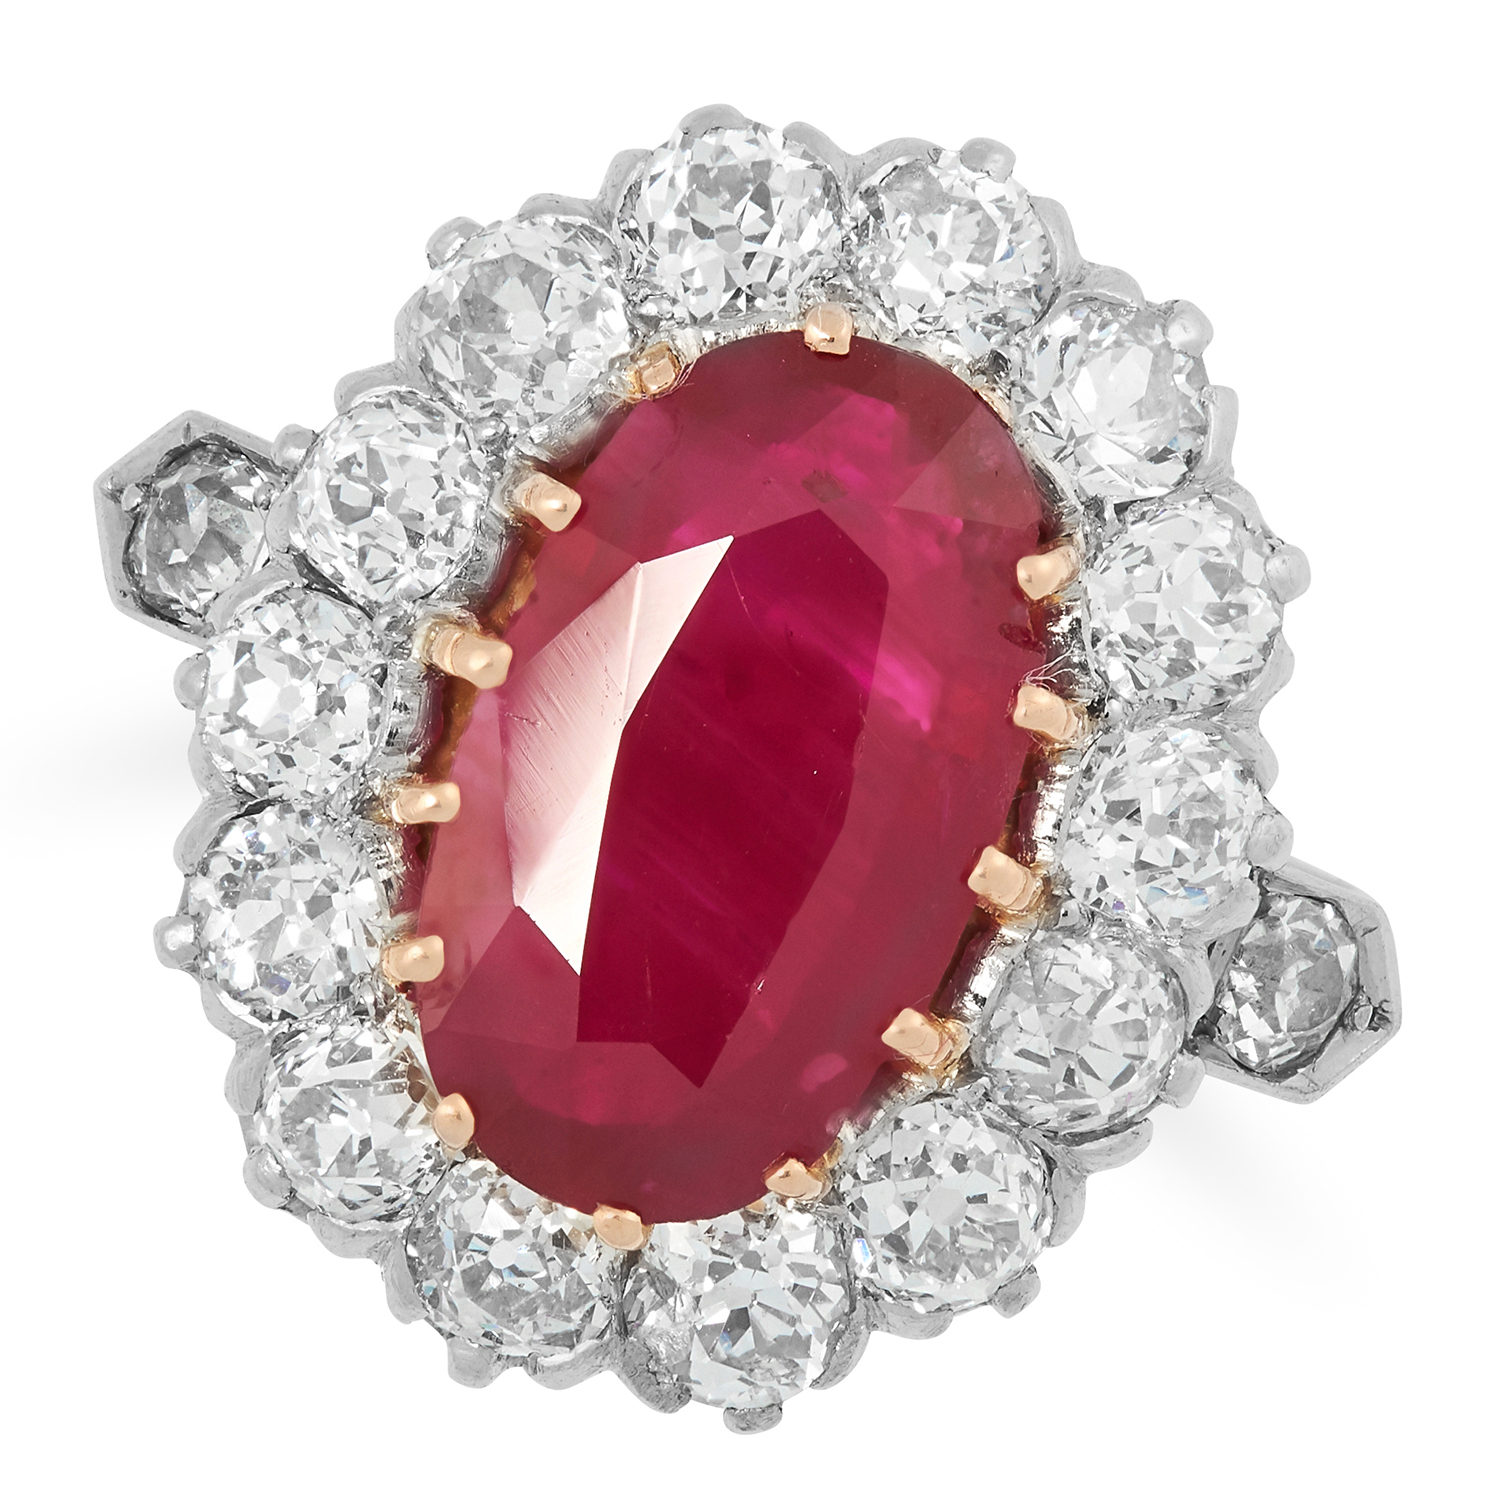 Los 23A - A BURMA NO HEAT RUBY AND DIAMOND RING set with an oval cut ruby of 2.10 carats encirlced by old